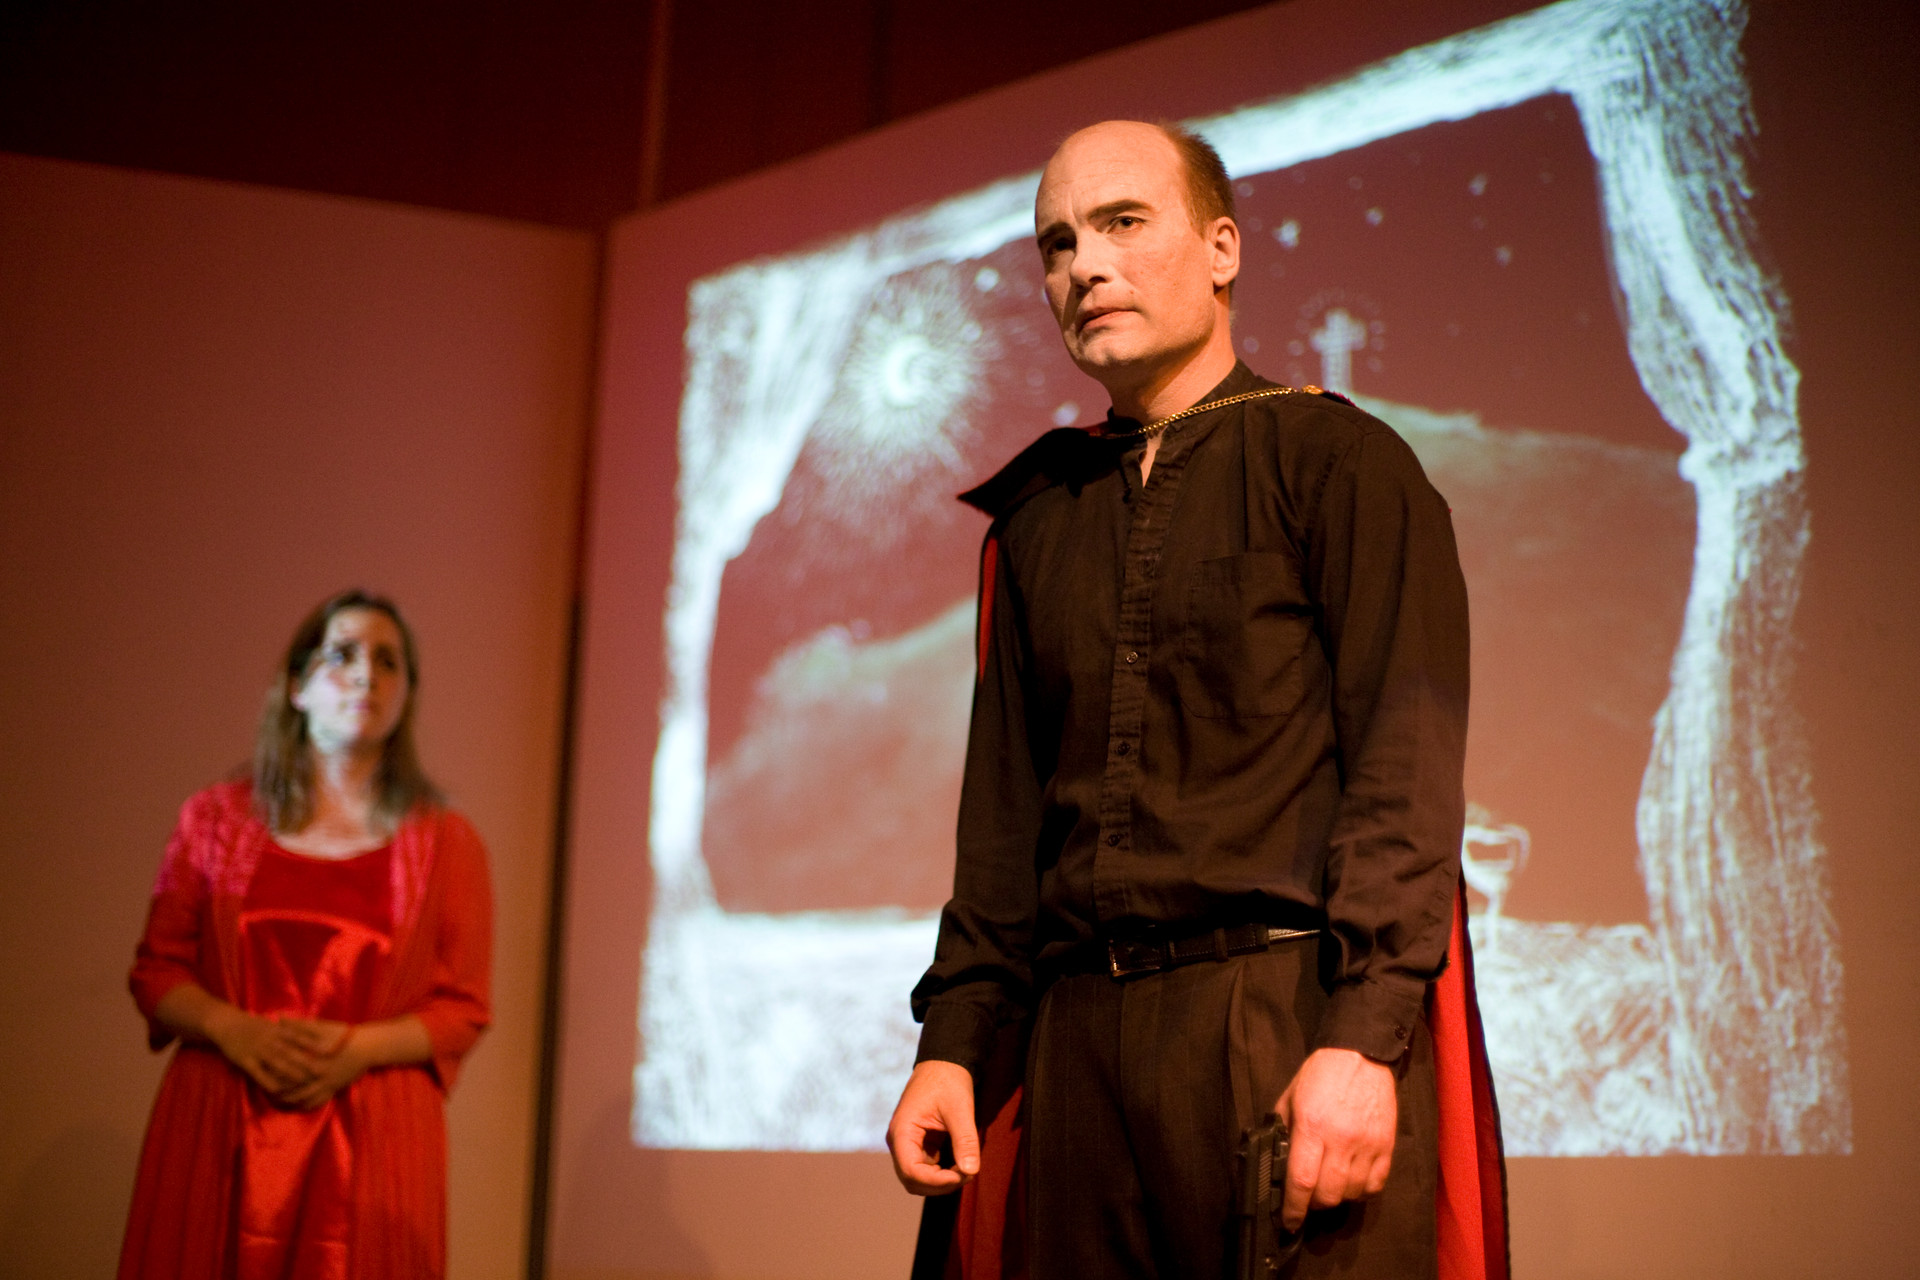 Dracula in a Time of Climate Change